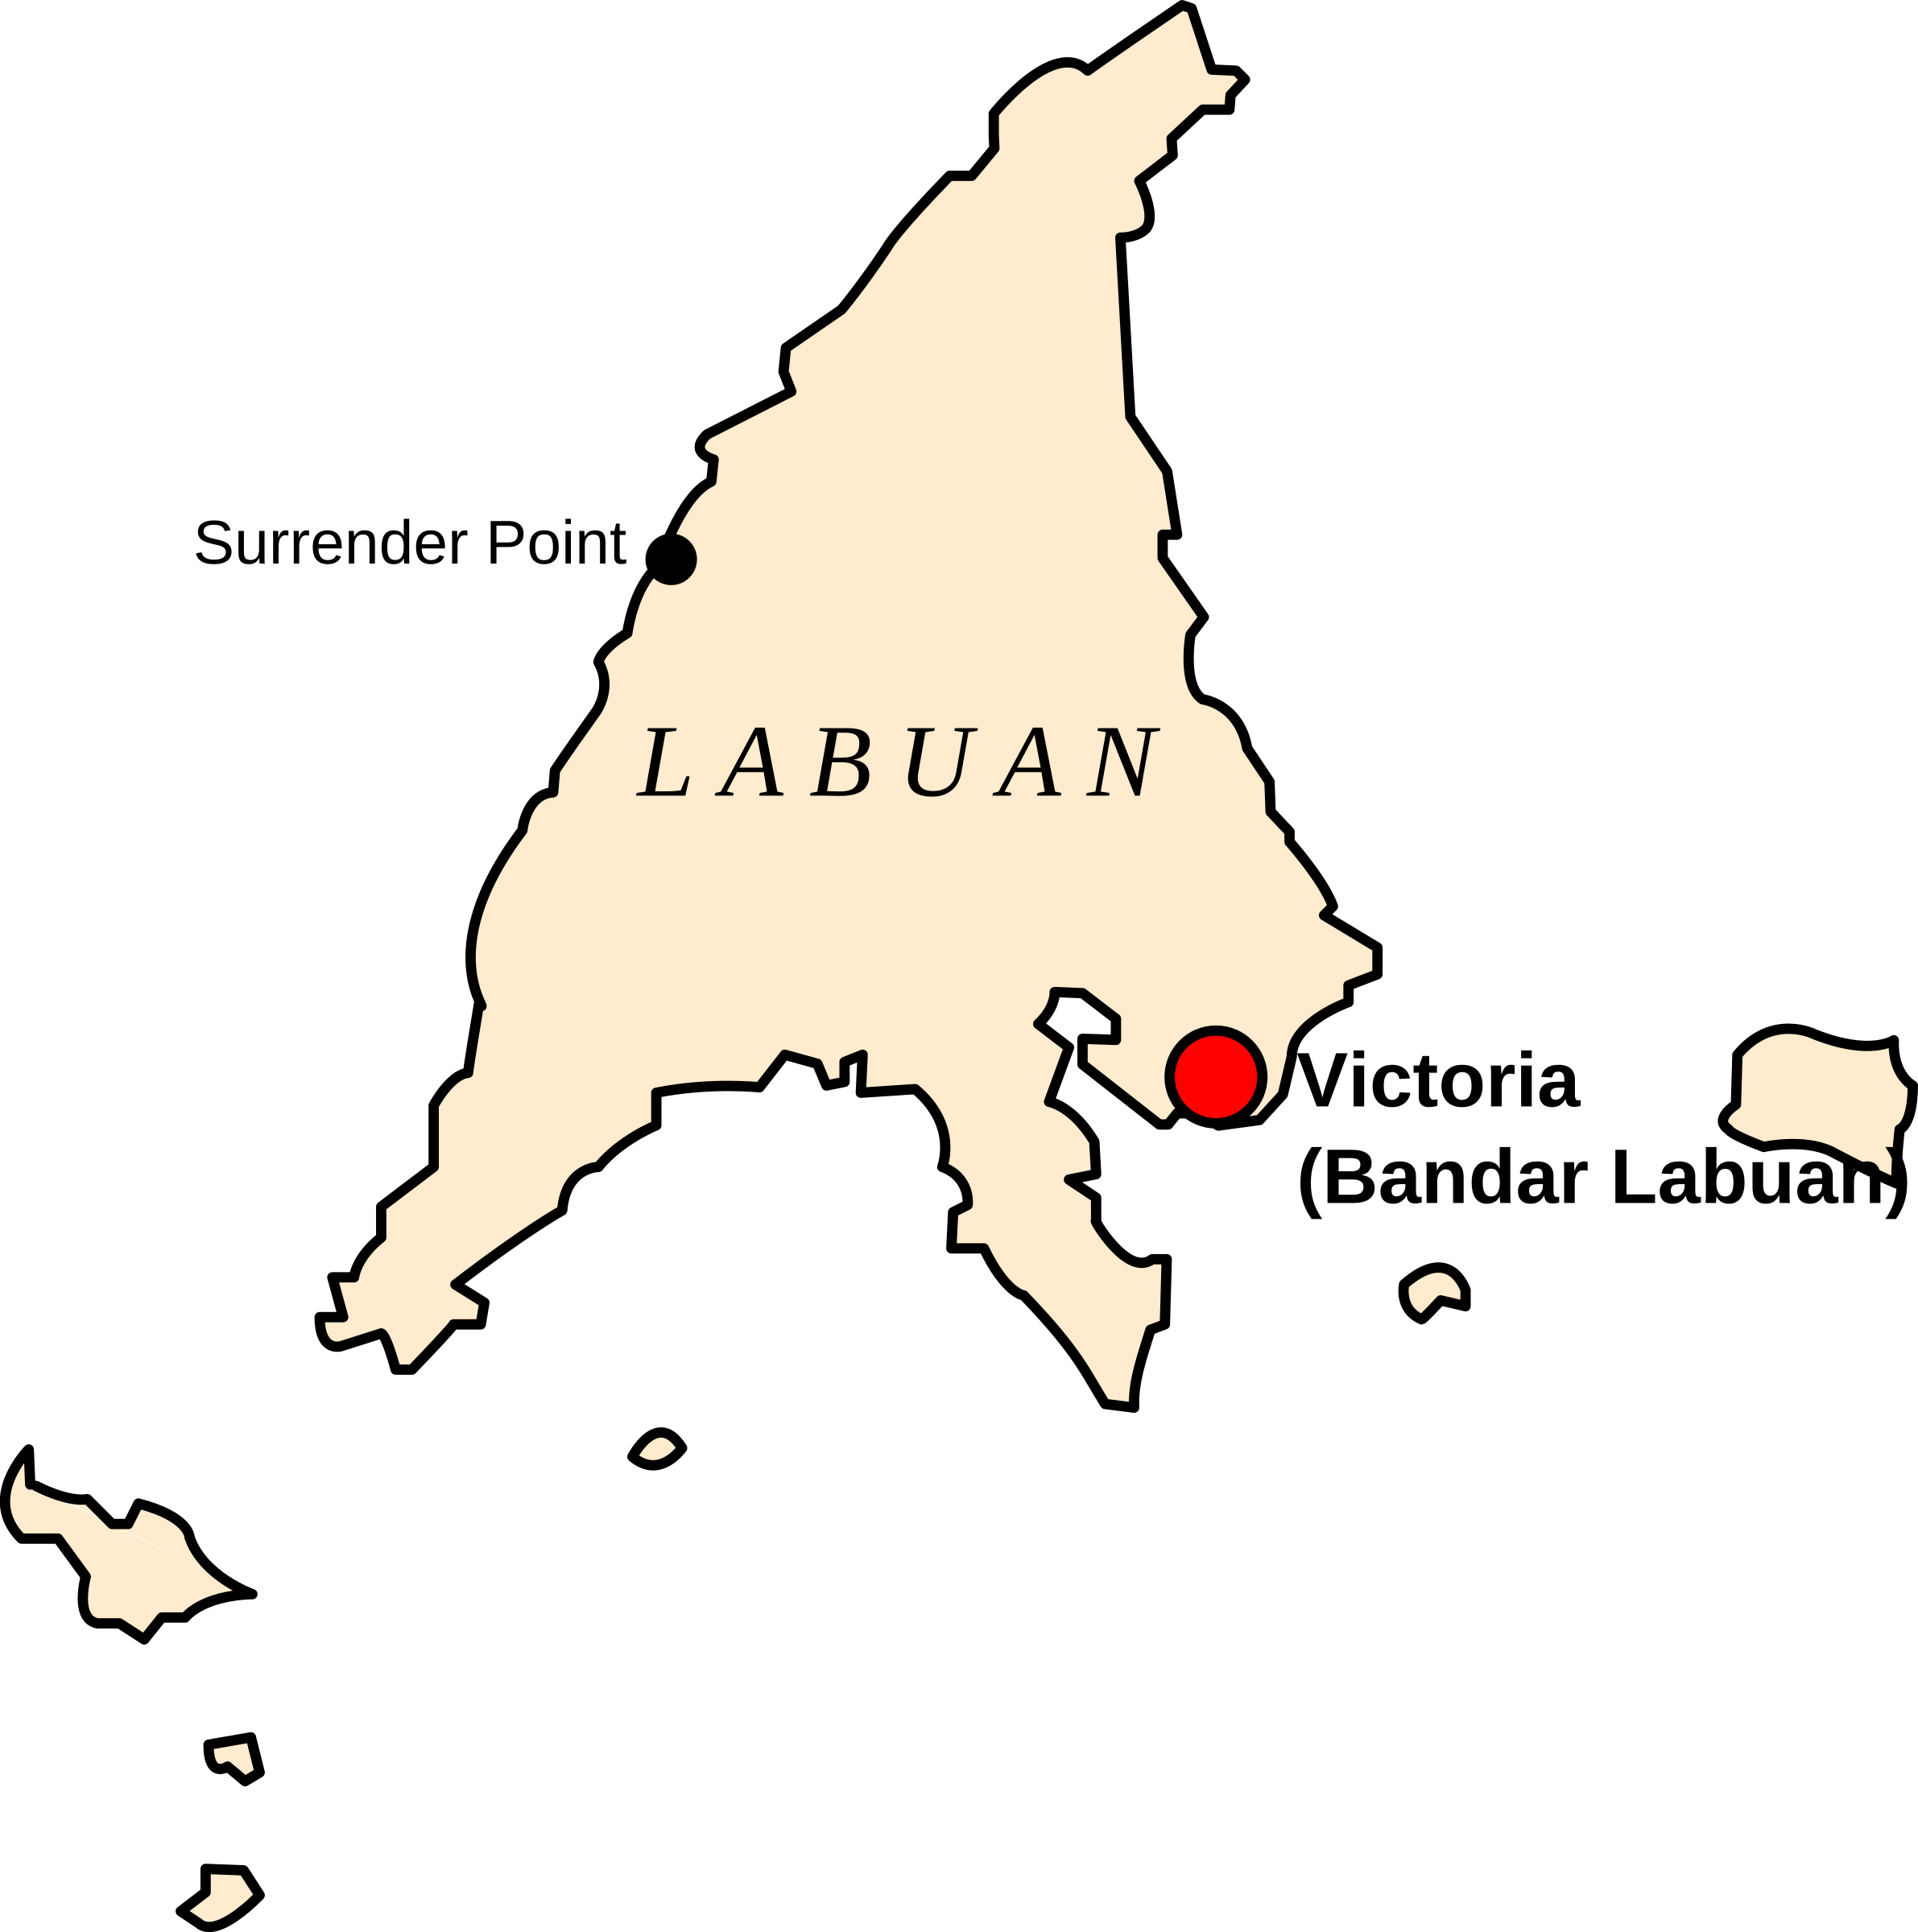 Map of Labuan, Malaysia by derkommander0916